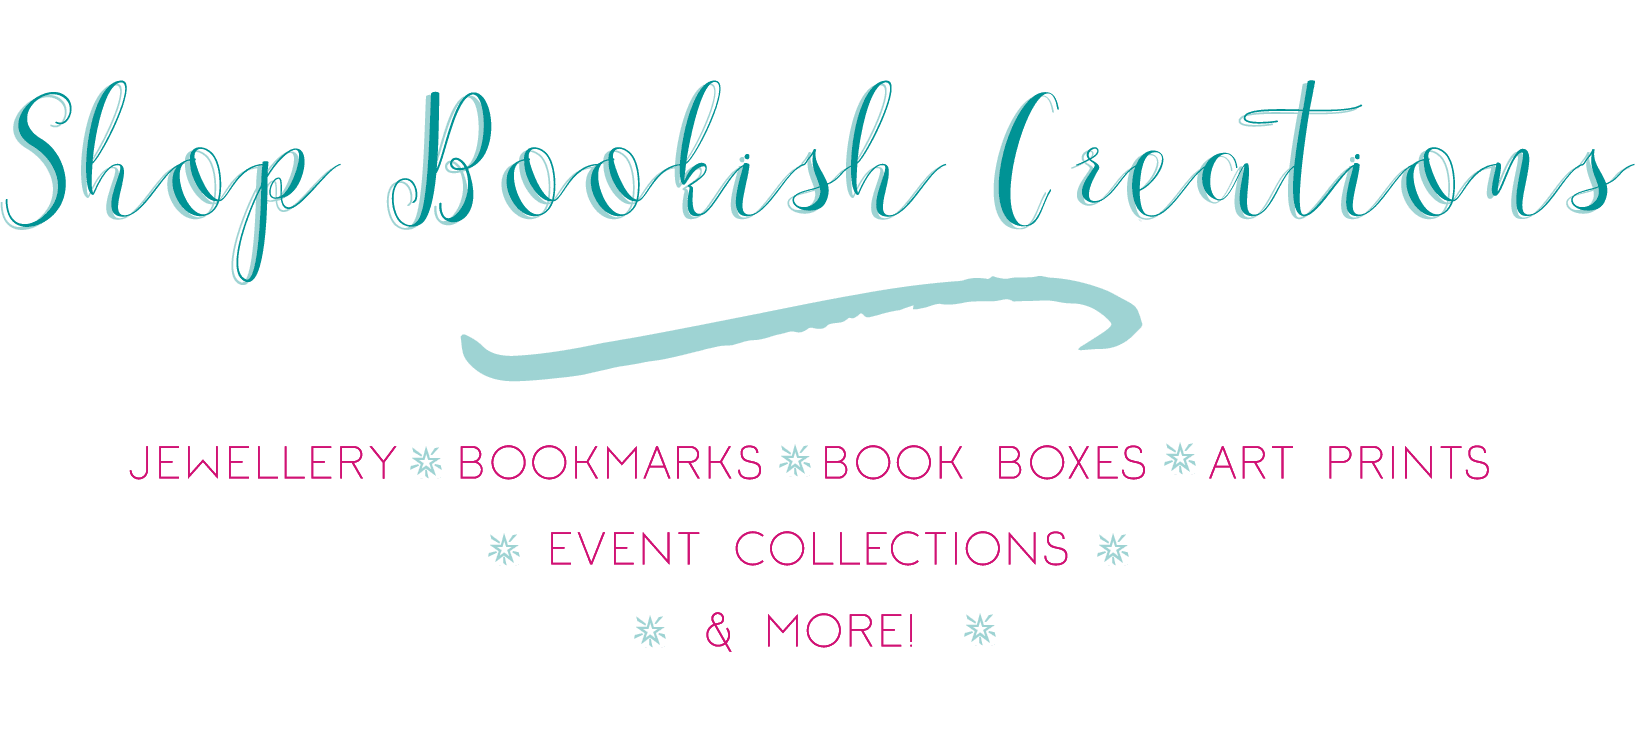 Shop Booknerdfangirl Creations